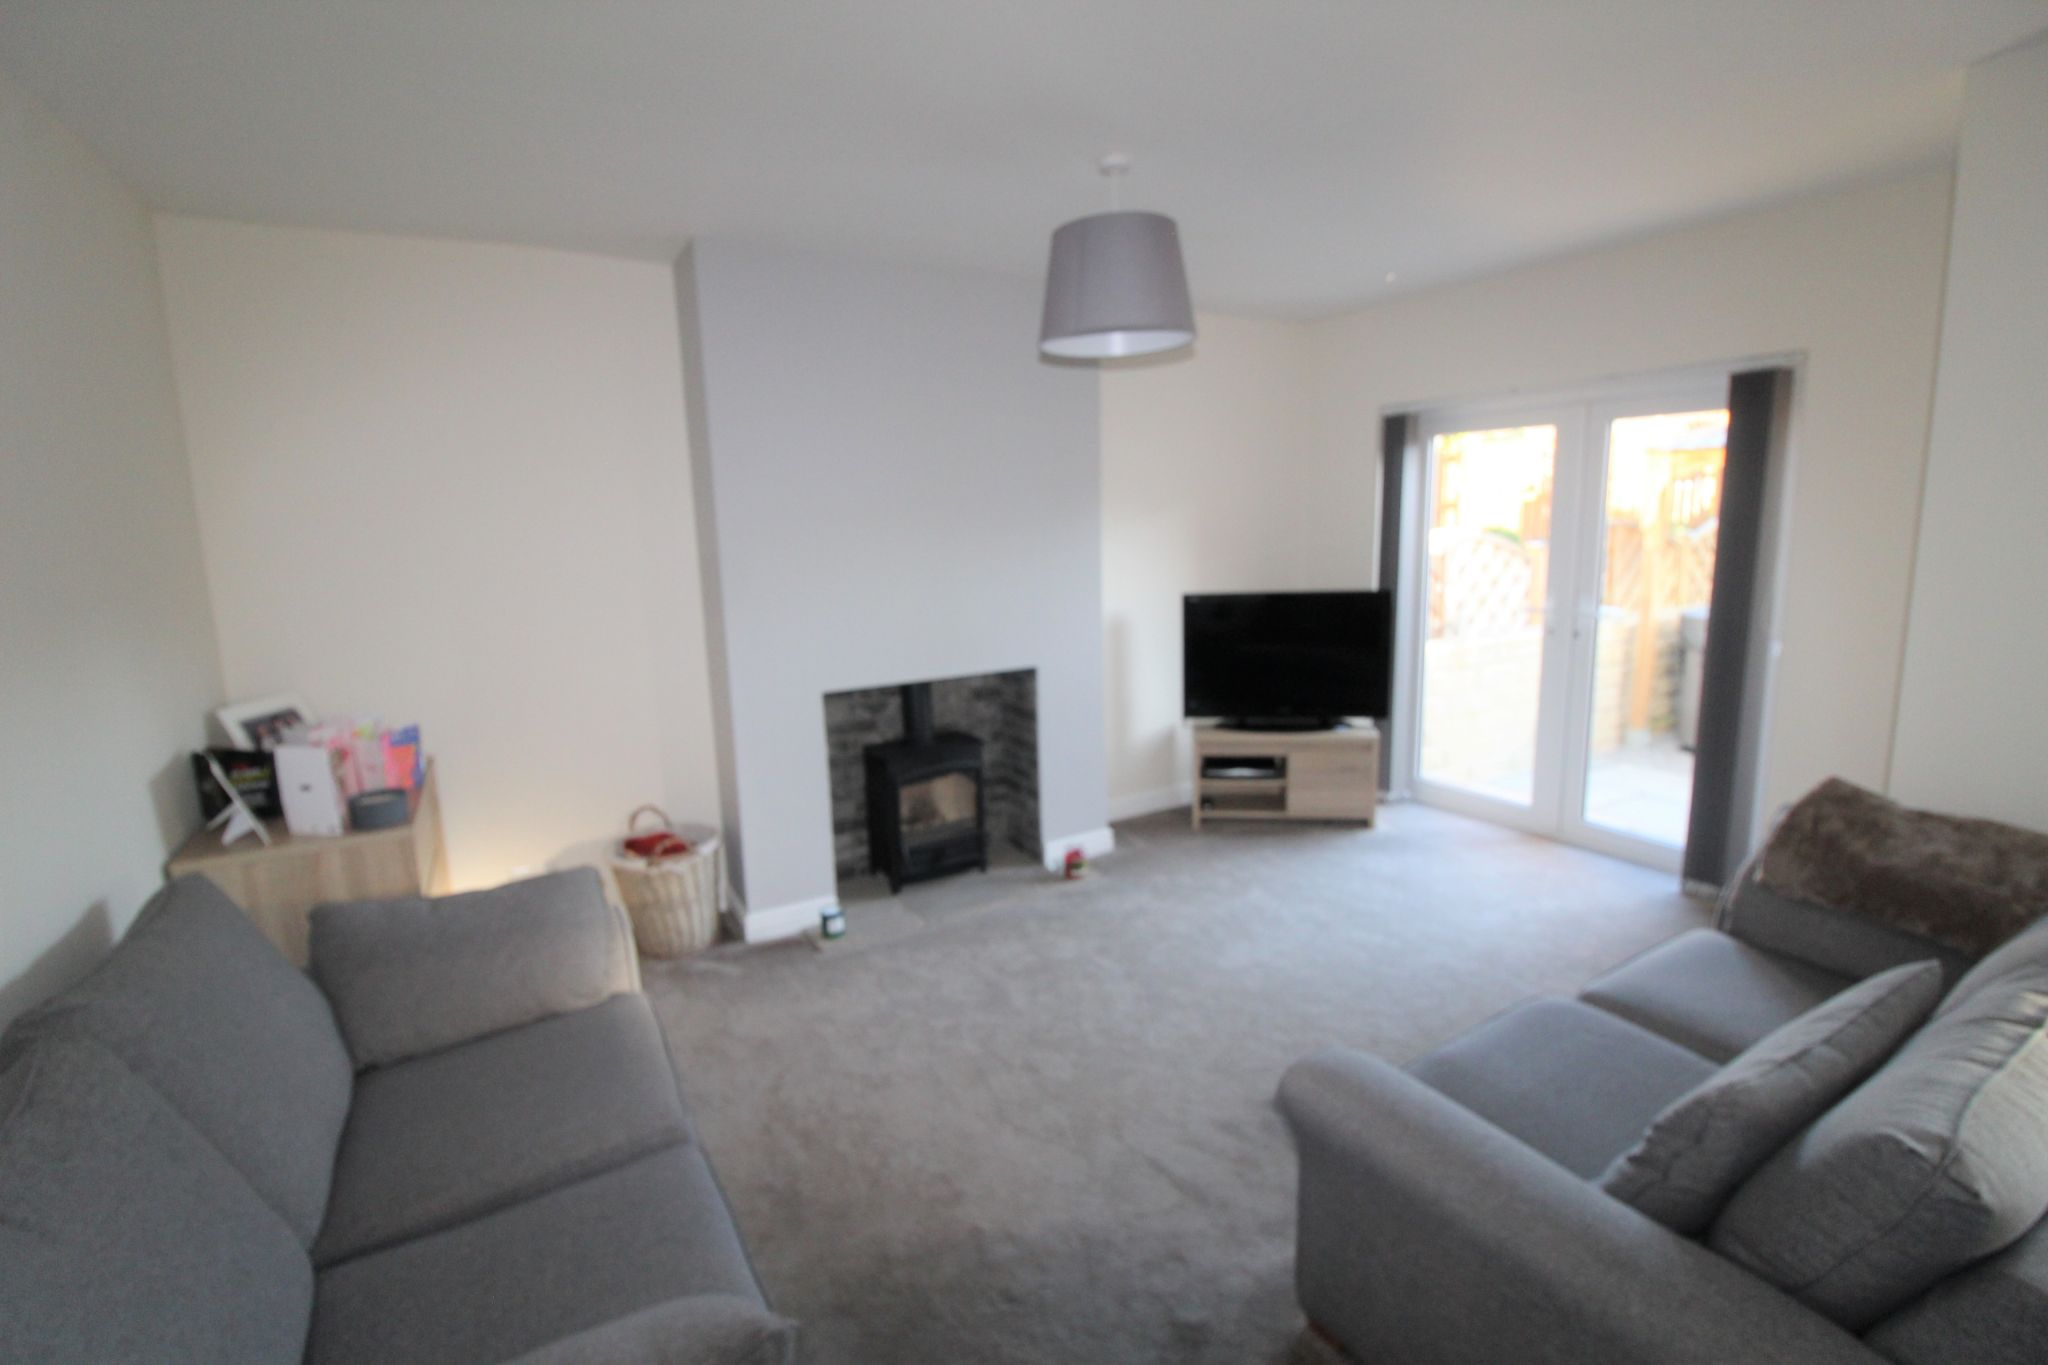 4 bedroom semi-detached bungalow SSTC in Brighouse - Lounge